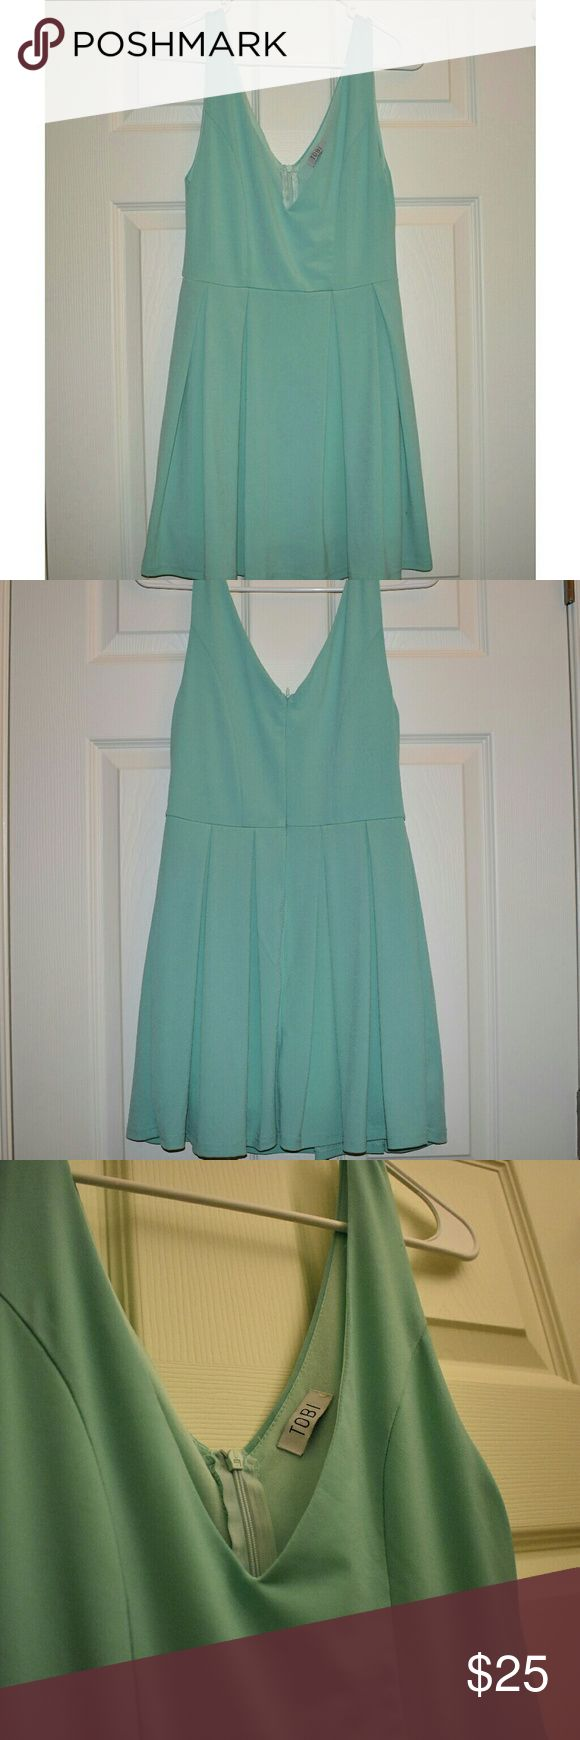 TOBI low neck dress in teal/blue Beautiful TOBI dress that is perfect for a daring date night or a fancy event. Very low neck.  Excellent condition and beautiful color, pictures don't do it justice. Tobi Dresses Midi